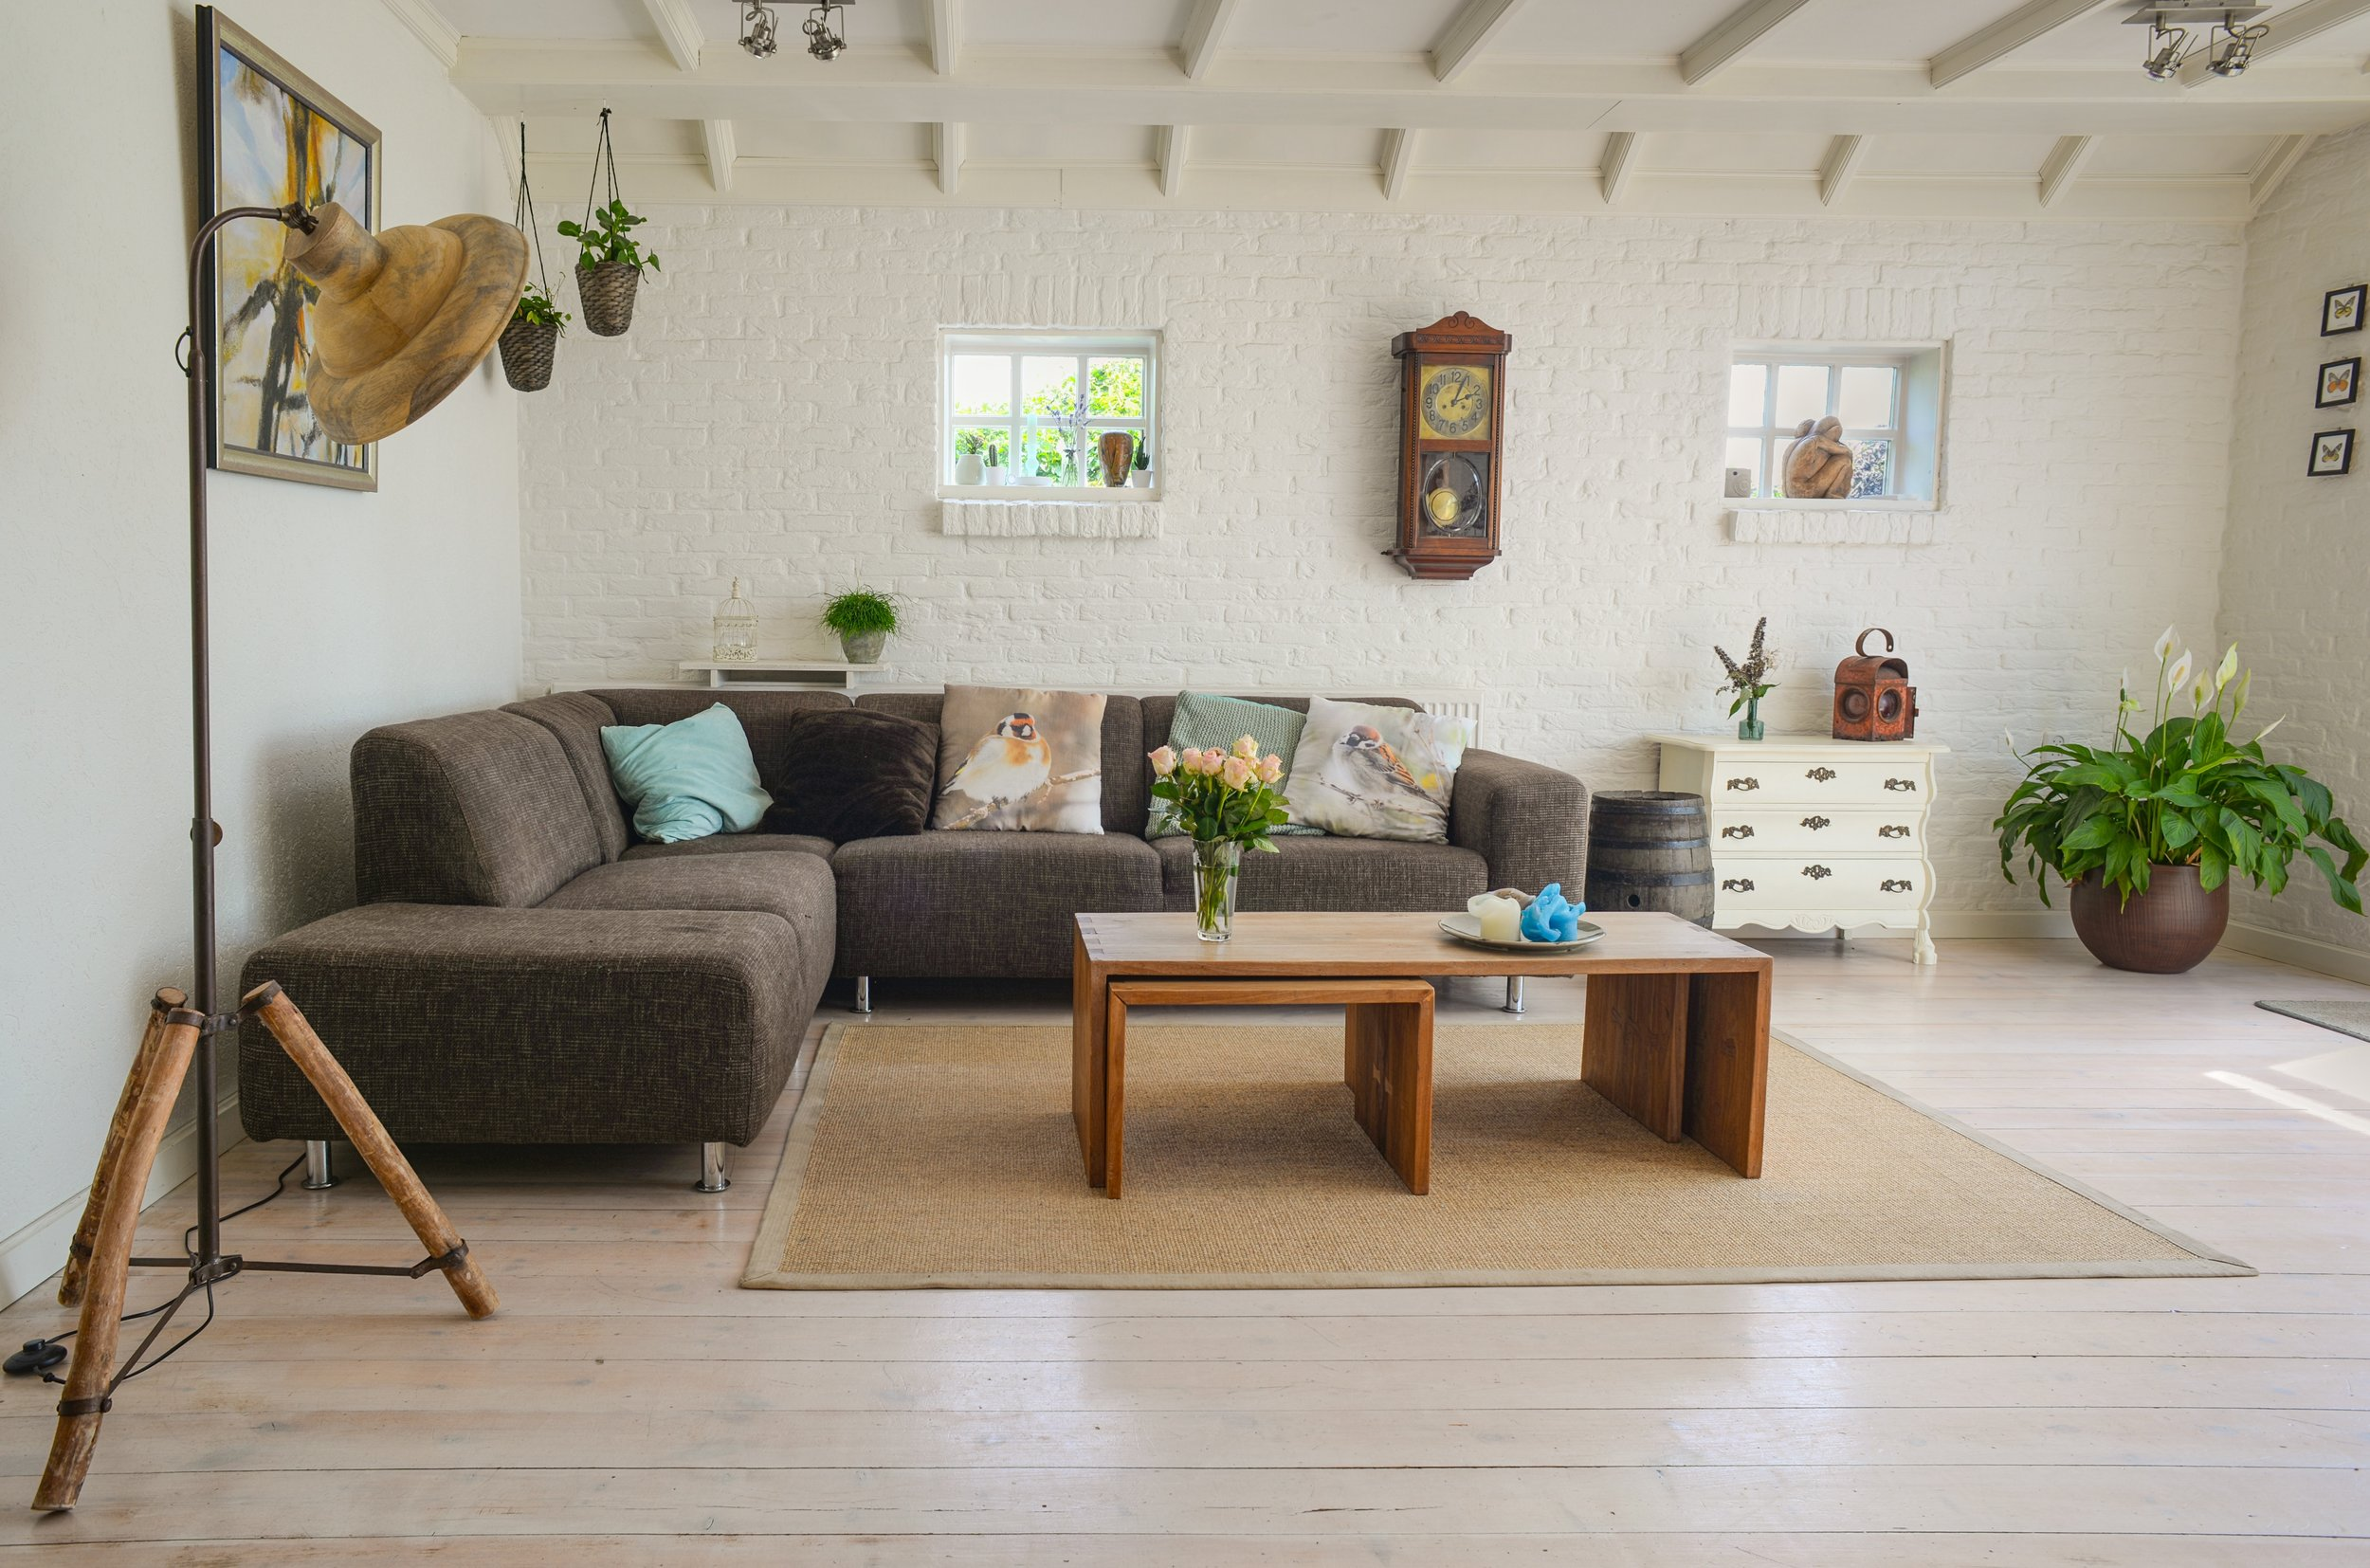 With a clean airy feel,this living space hones  Open Concept  yet still homey and cozy.